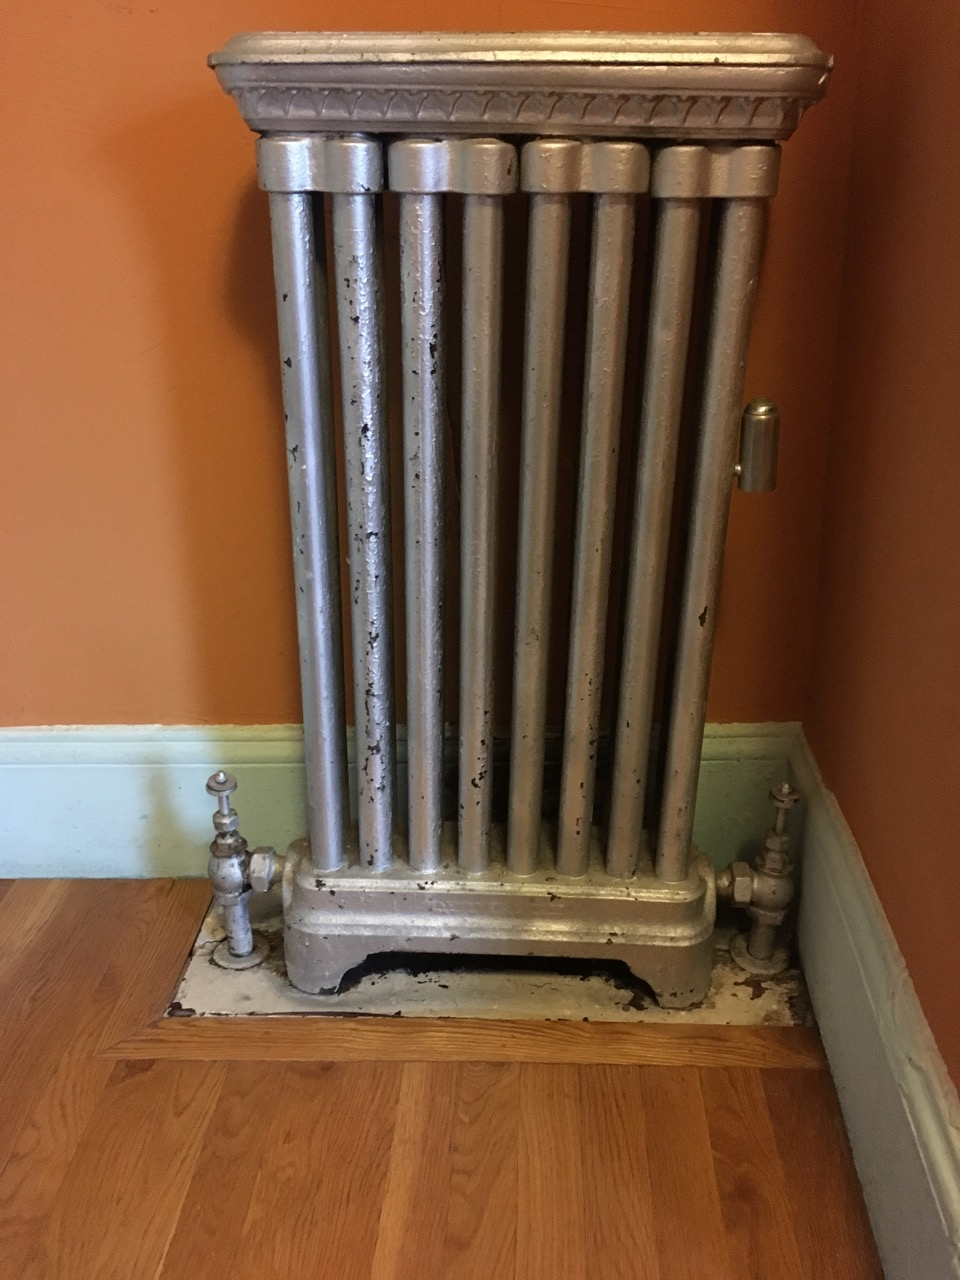 piping a steam boiler diagram new    steam       boiler    and radiator issues     heating help the wall  new    steam       boiler    and radiator issues     heating help the wall